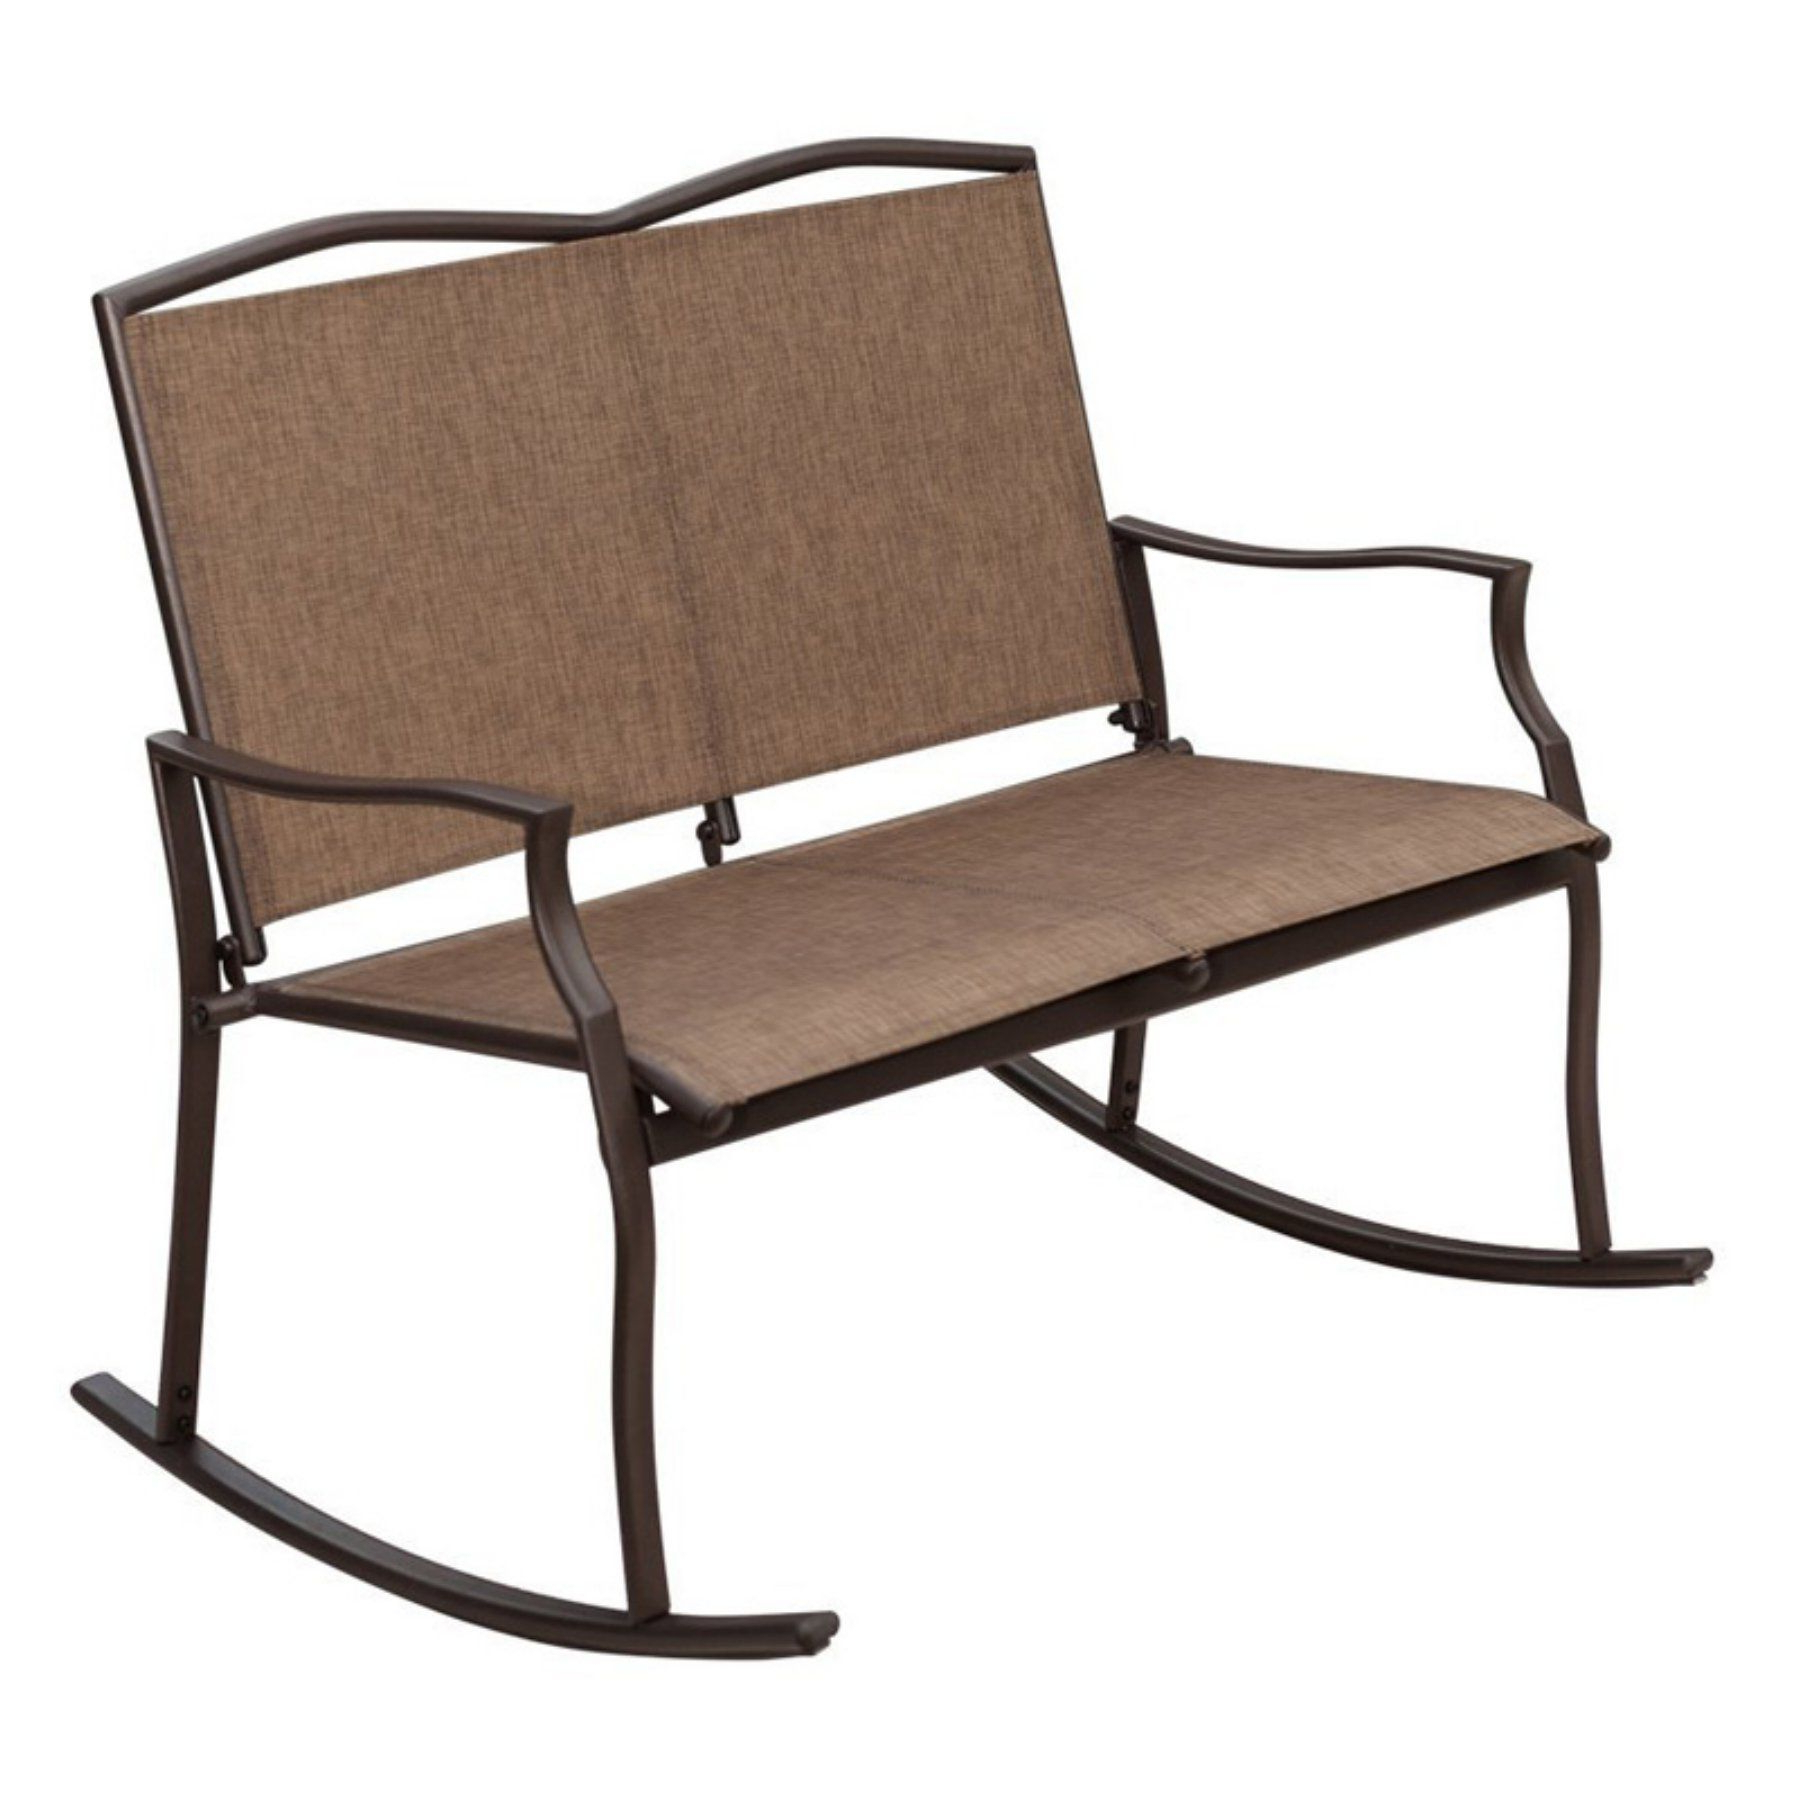 Padded Sling Double Gliders Pertaining To Best And Newest Sunlife Garden Party Sling Loveseat Double Outdoor Rocking (View 7 of 30)